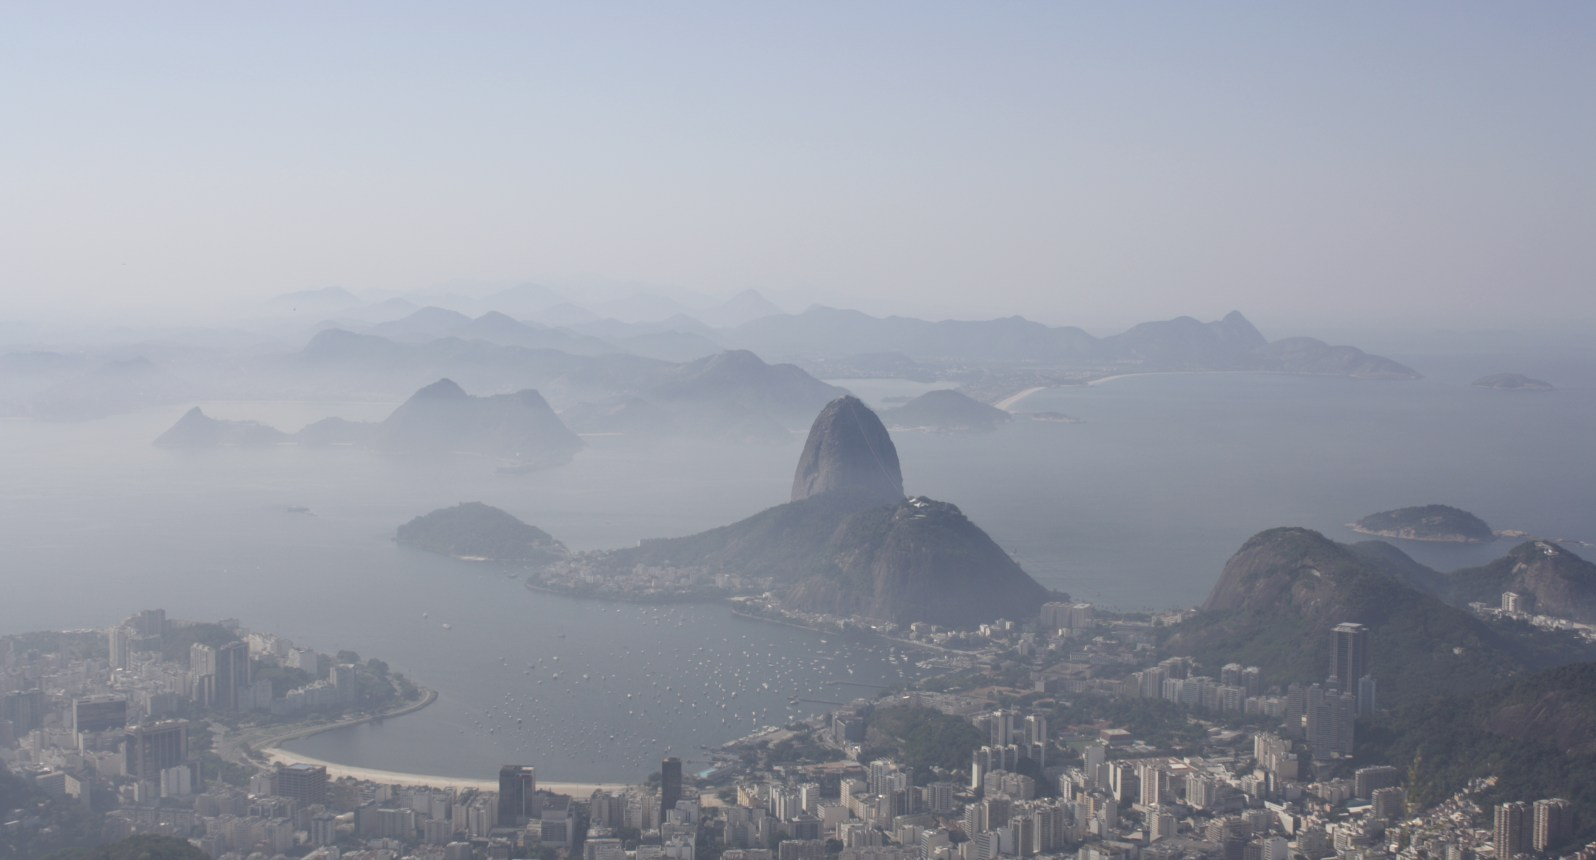 Bird's-eye view of Guanabara Bay from Corcovado mountainRio de Janeiro, Brazil